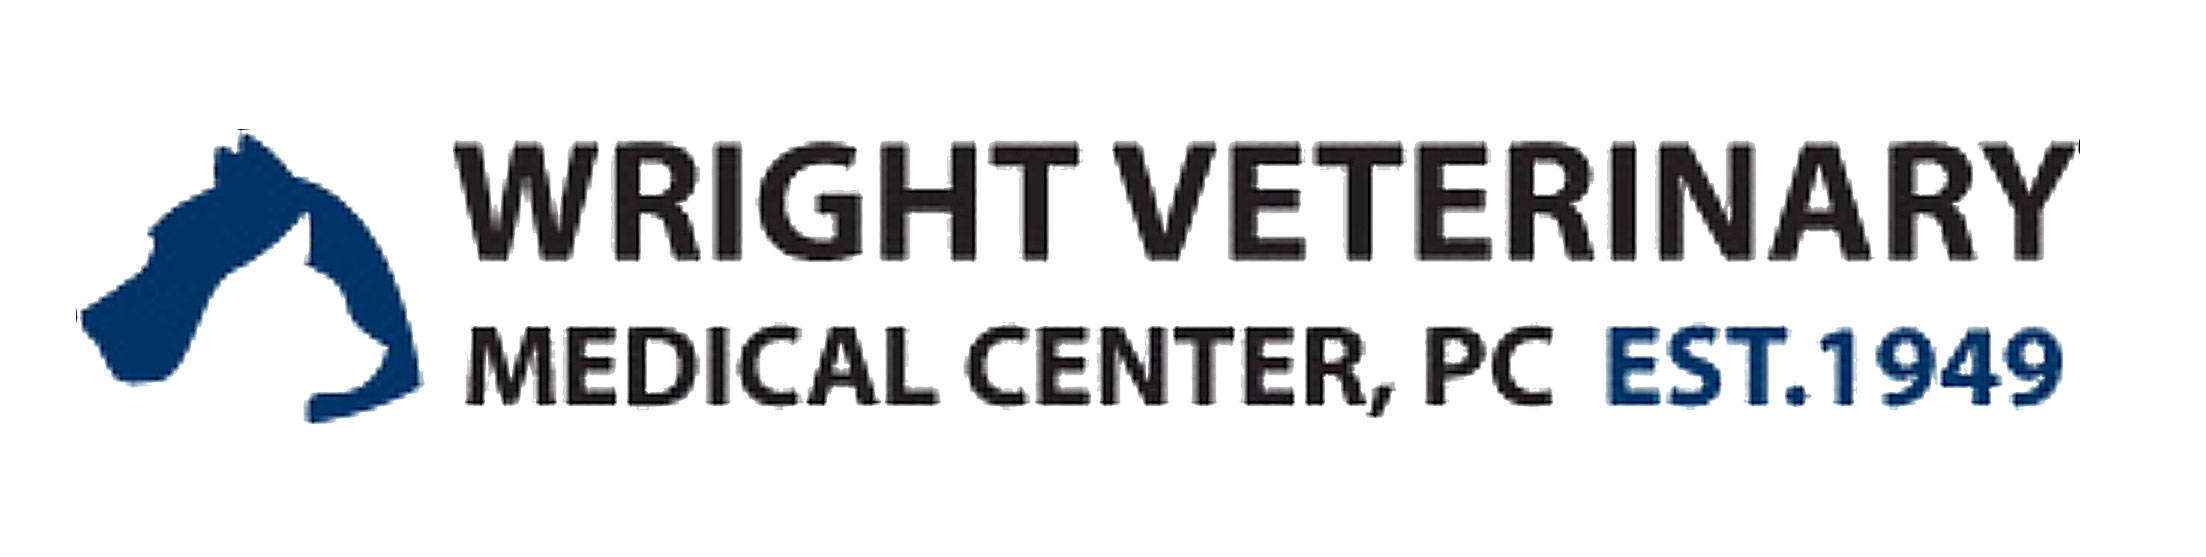 Wright Veterinary Medical Center logo